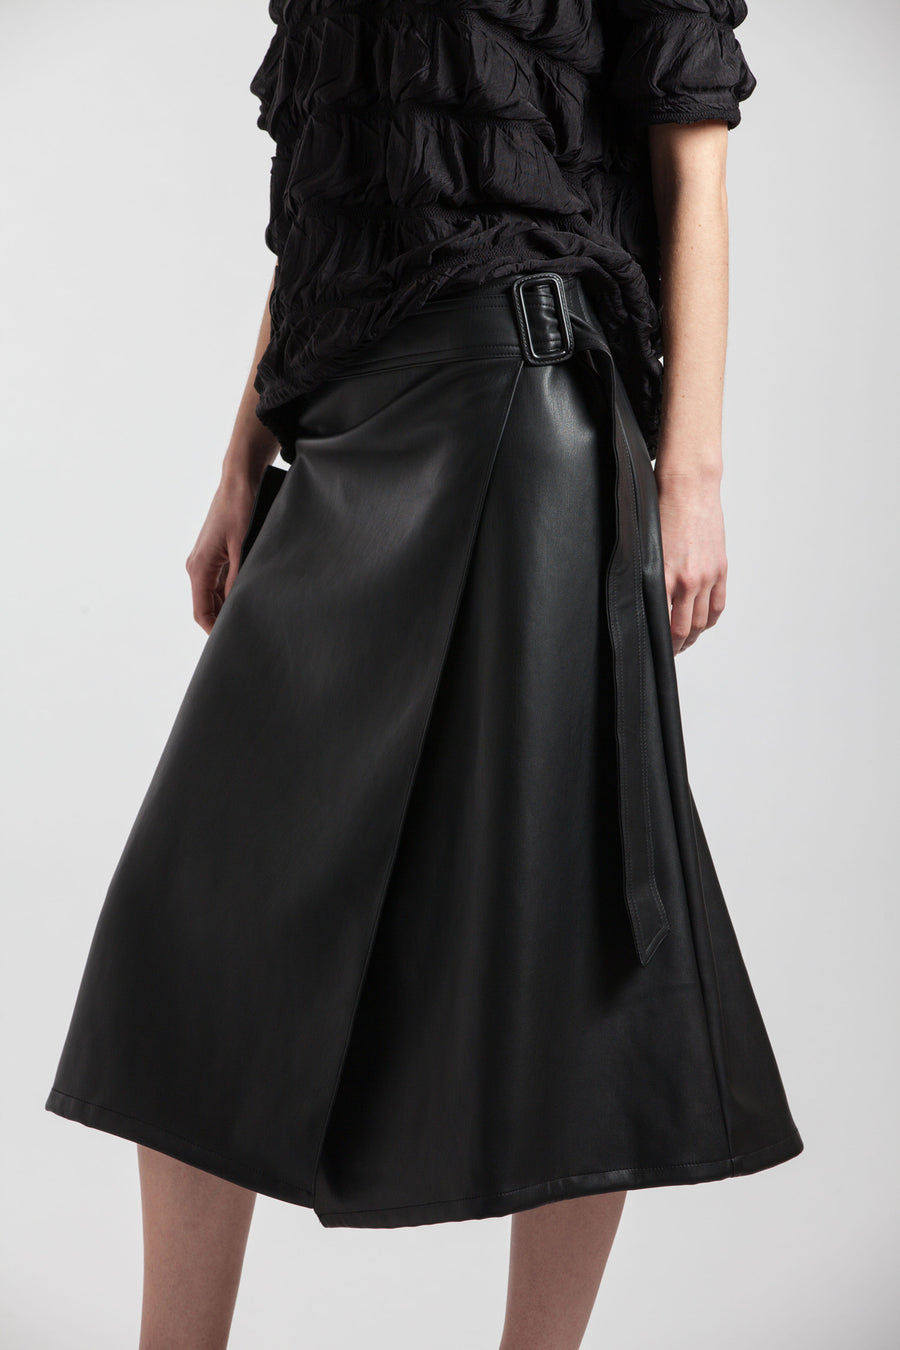 A-Line Buckle Black Synthetic Leather Skirt - Via Ennji Online Store